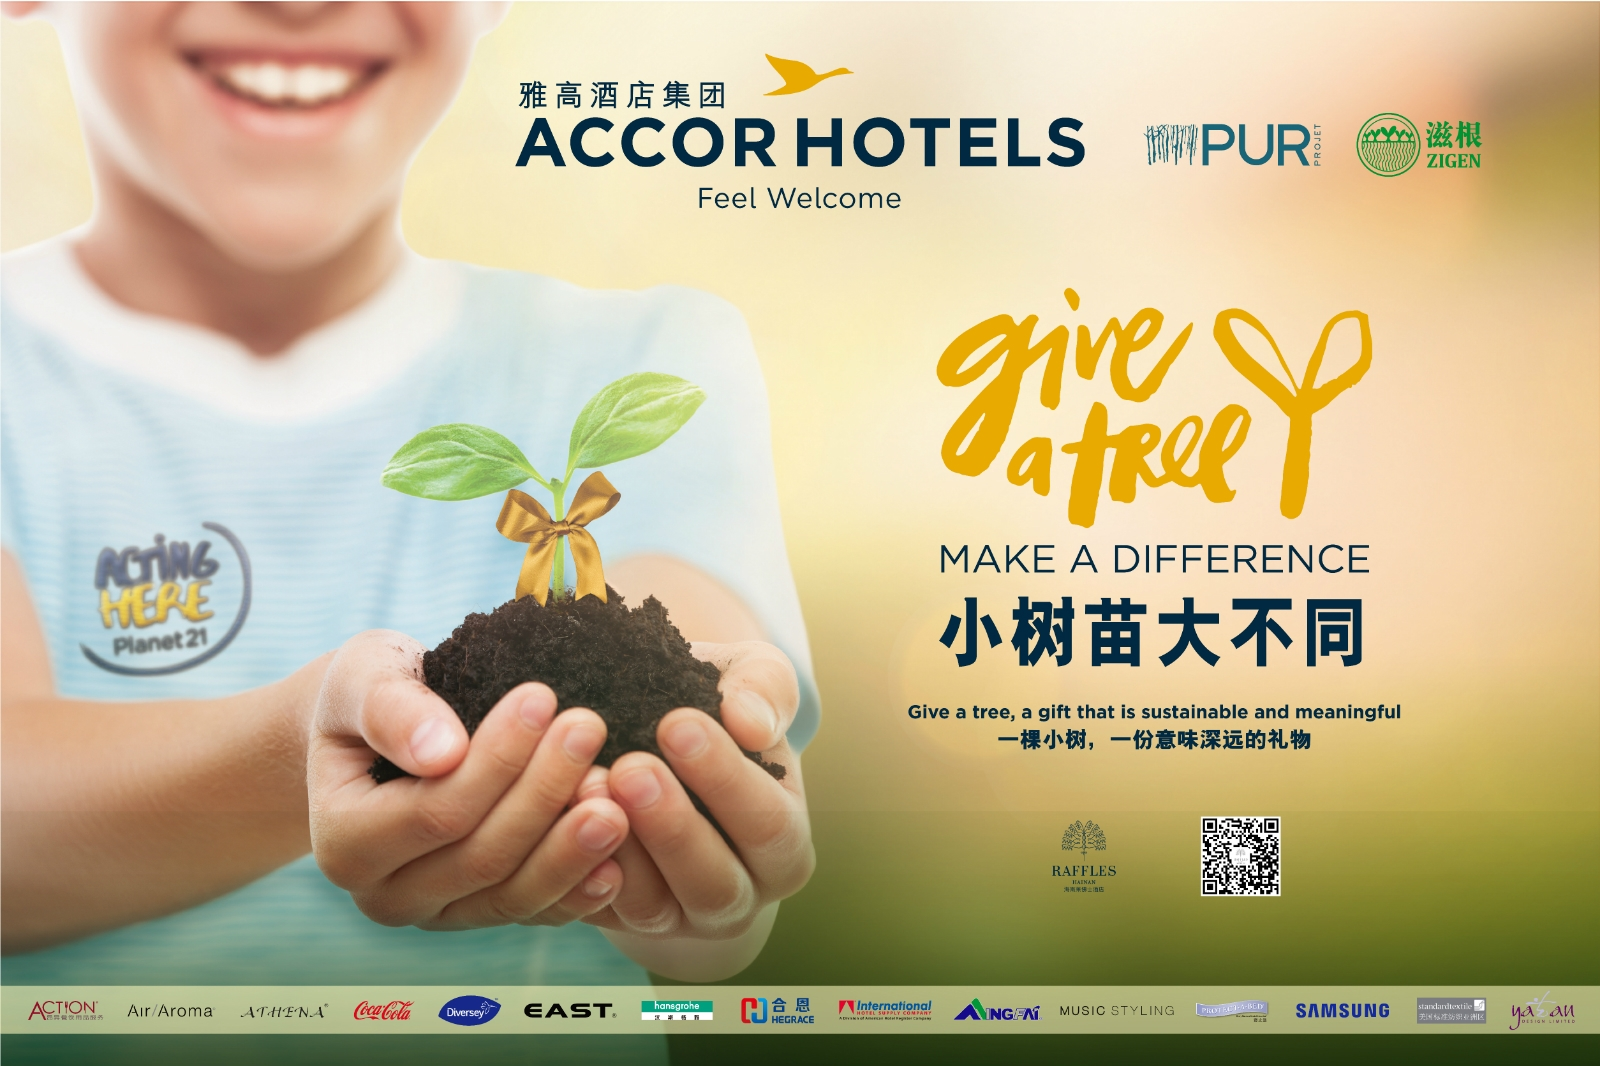 AccorHotels Greater China raises over RMB630,000 through Give a Tree campaign to support the environment